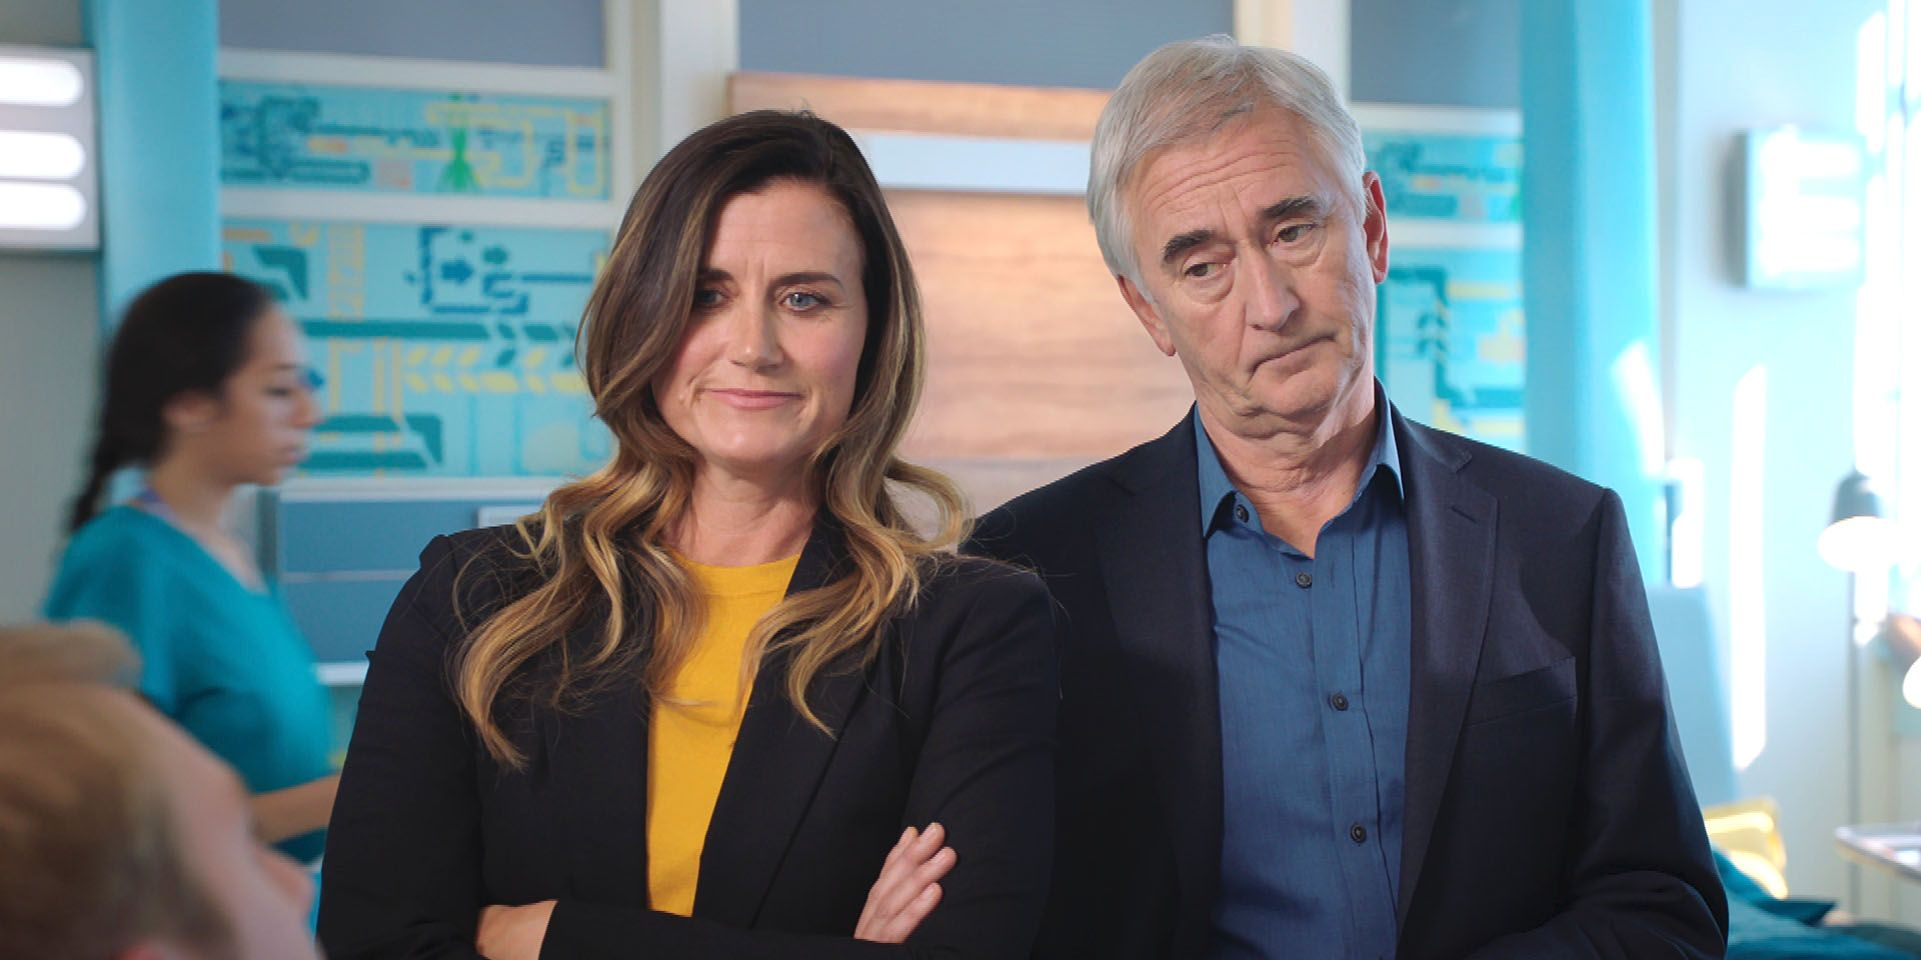 Ange Godard (DAWN STEELE) and Tom Campbell-Gore (DENIS LAWSON) in Holby City